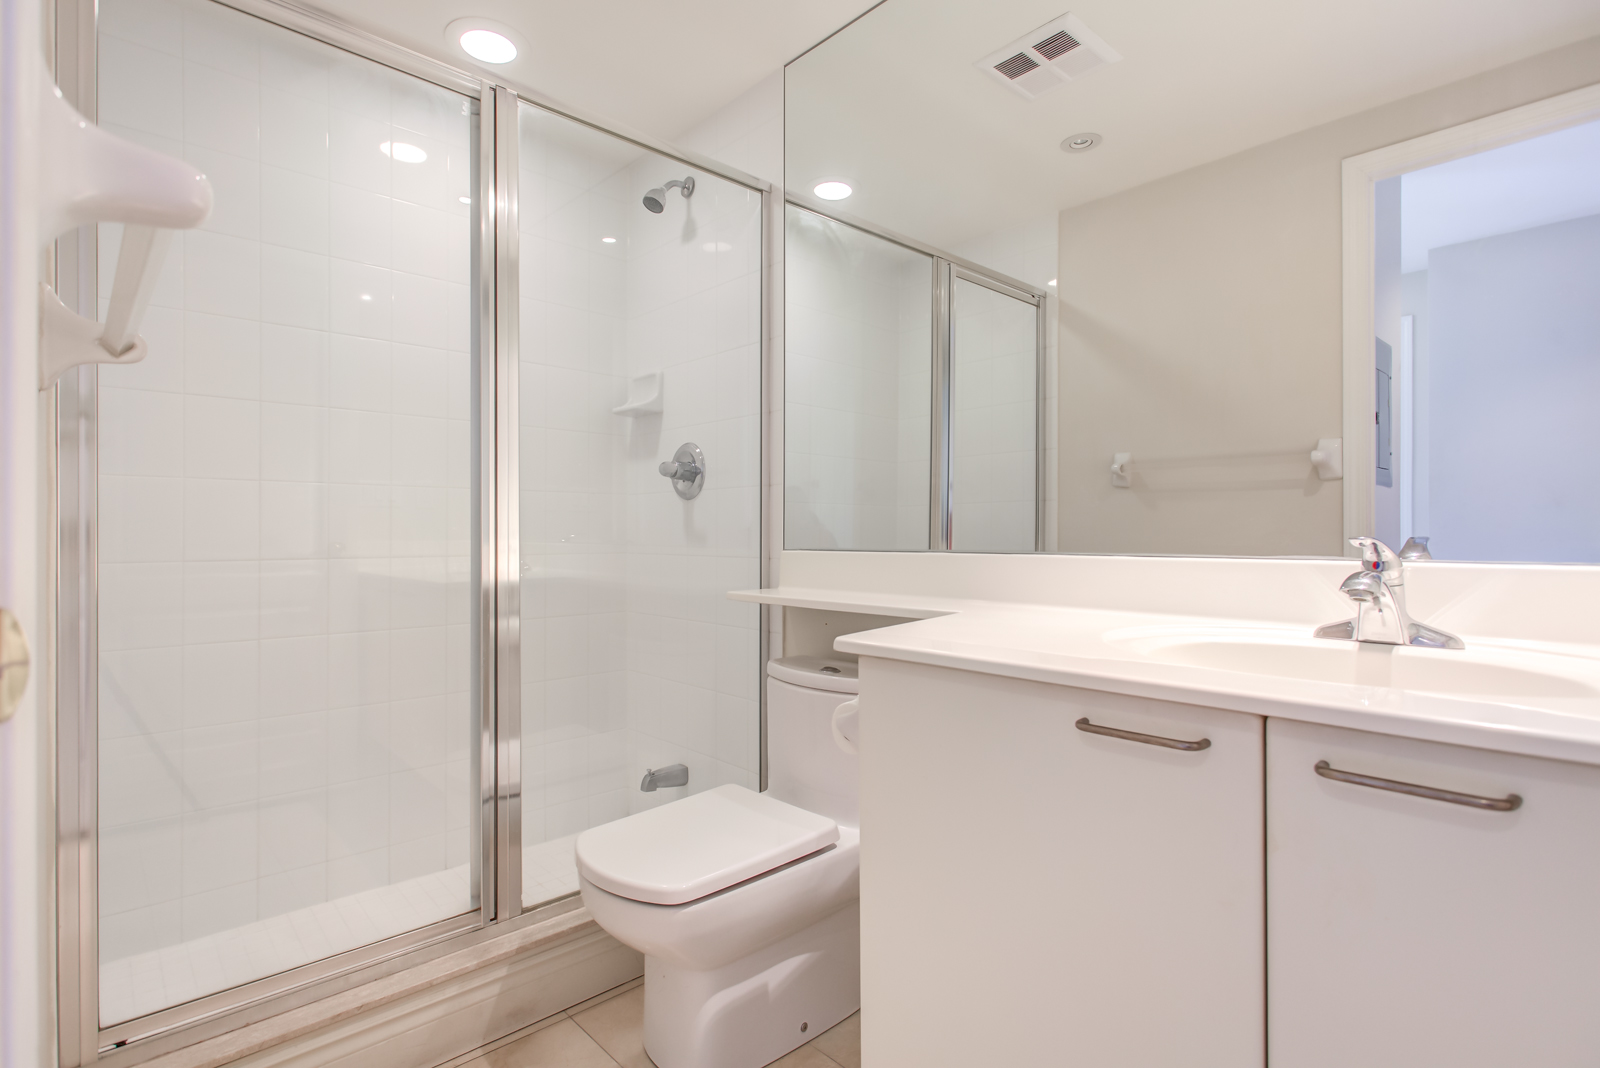 Washroom of 20 Collier St Unit 408 with walk-in shower, white sink and cabinet, and huge mirror.